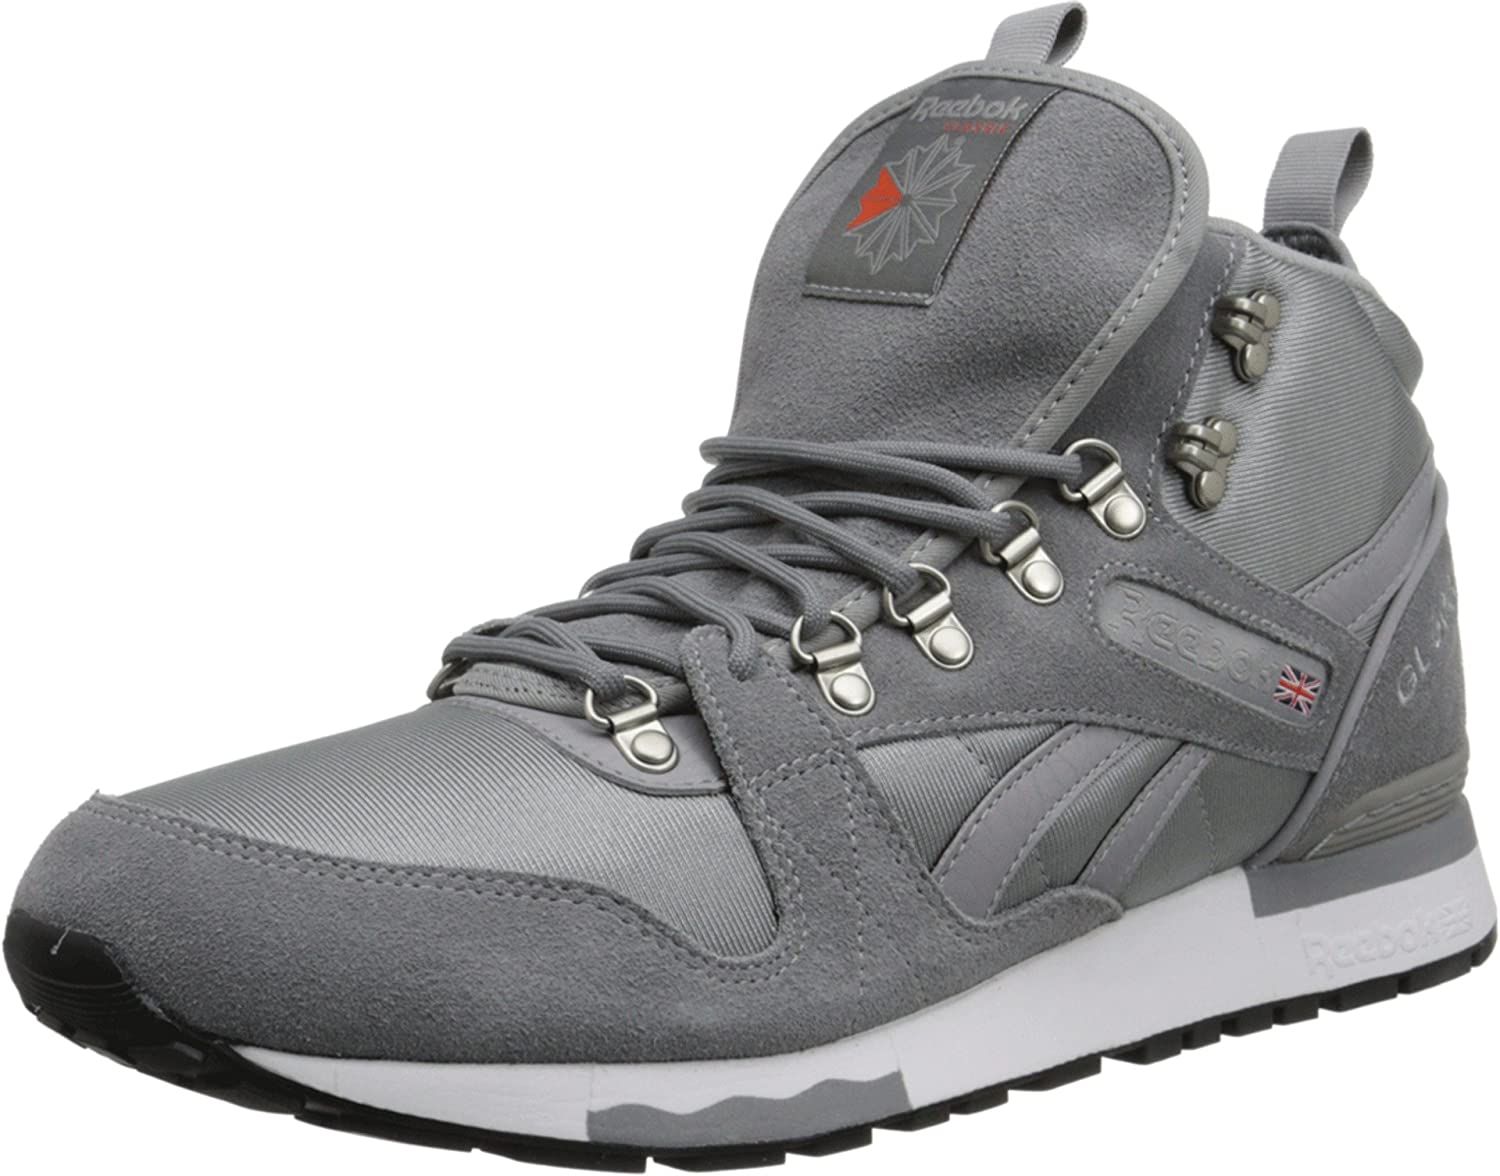 8bf064be606 Amazon.com  Reebok GL 6000 Mid - Foggy Grey   Flat Grey-Grey